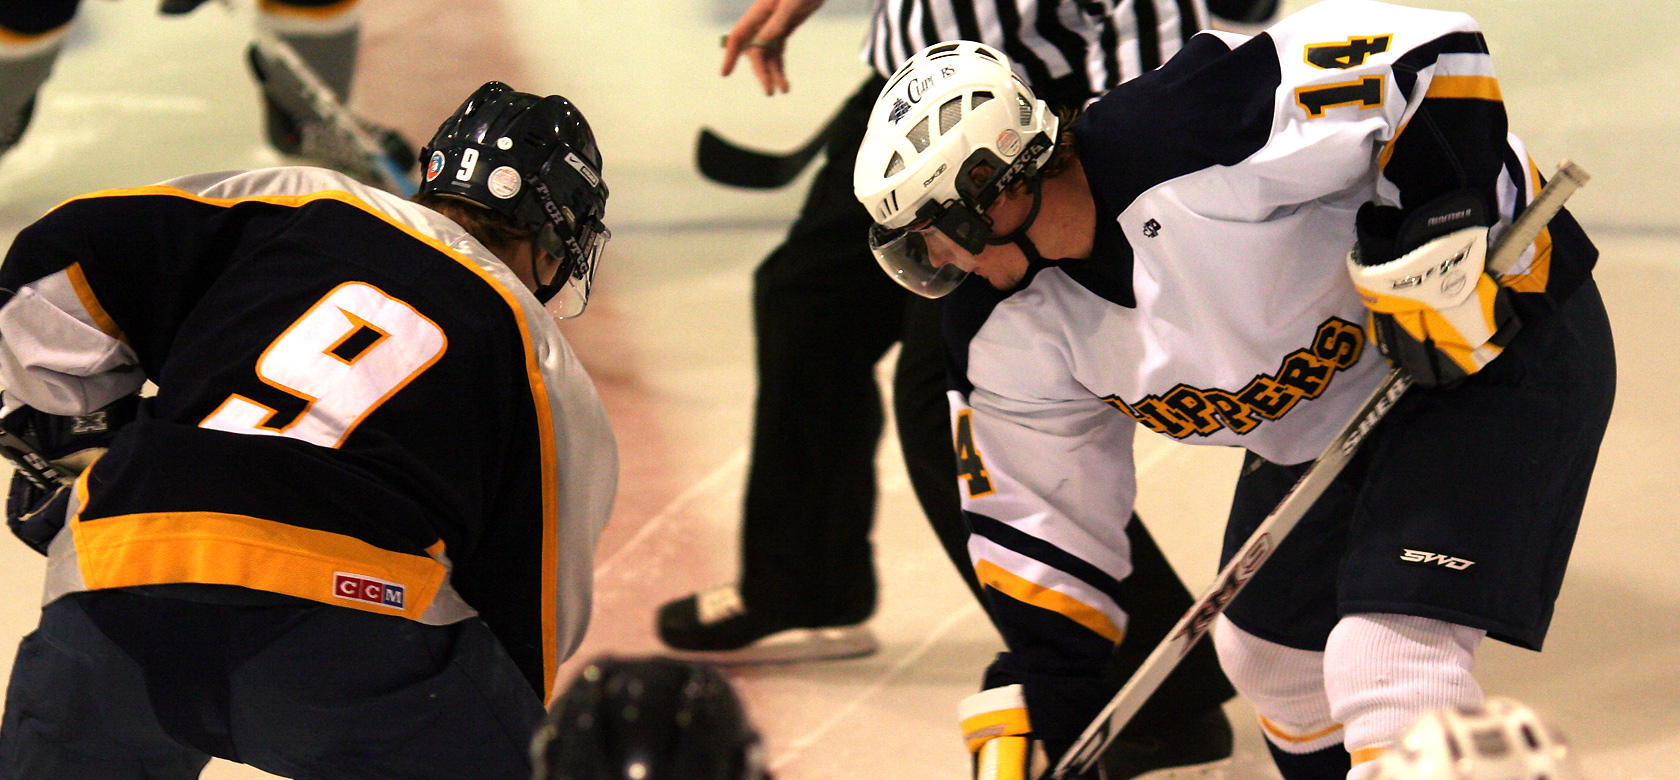 face off at centre ice